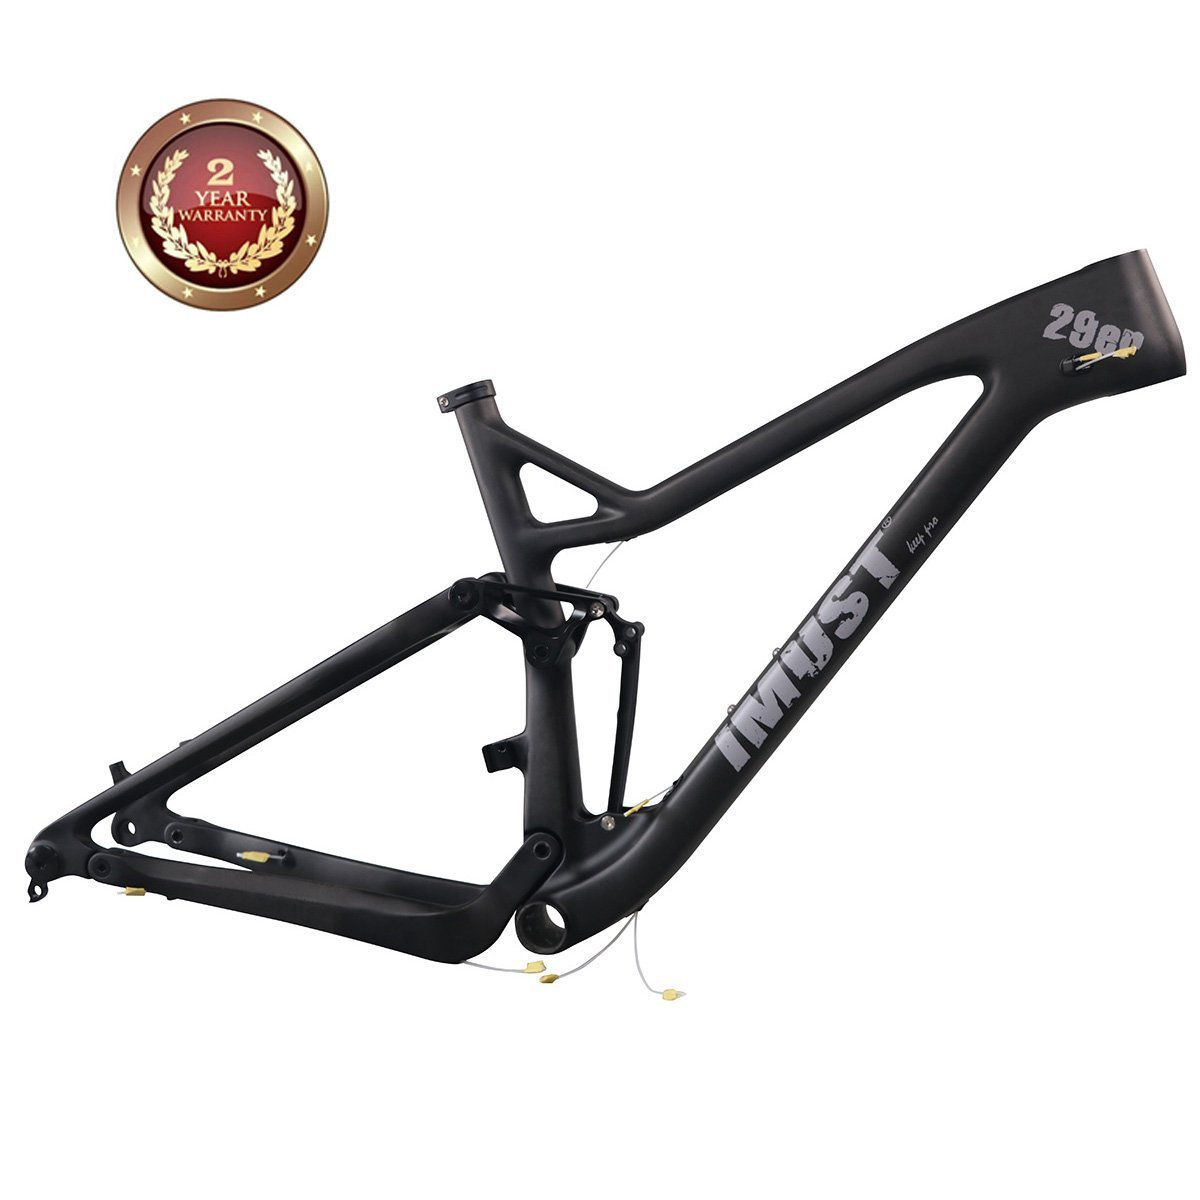 IMUST Carbon 29er Full Suspension XC frame/Trail frame XC29 BB92 Rear 12x148mm 18.5 inch